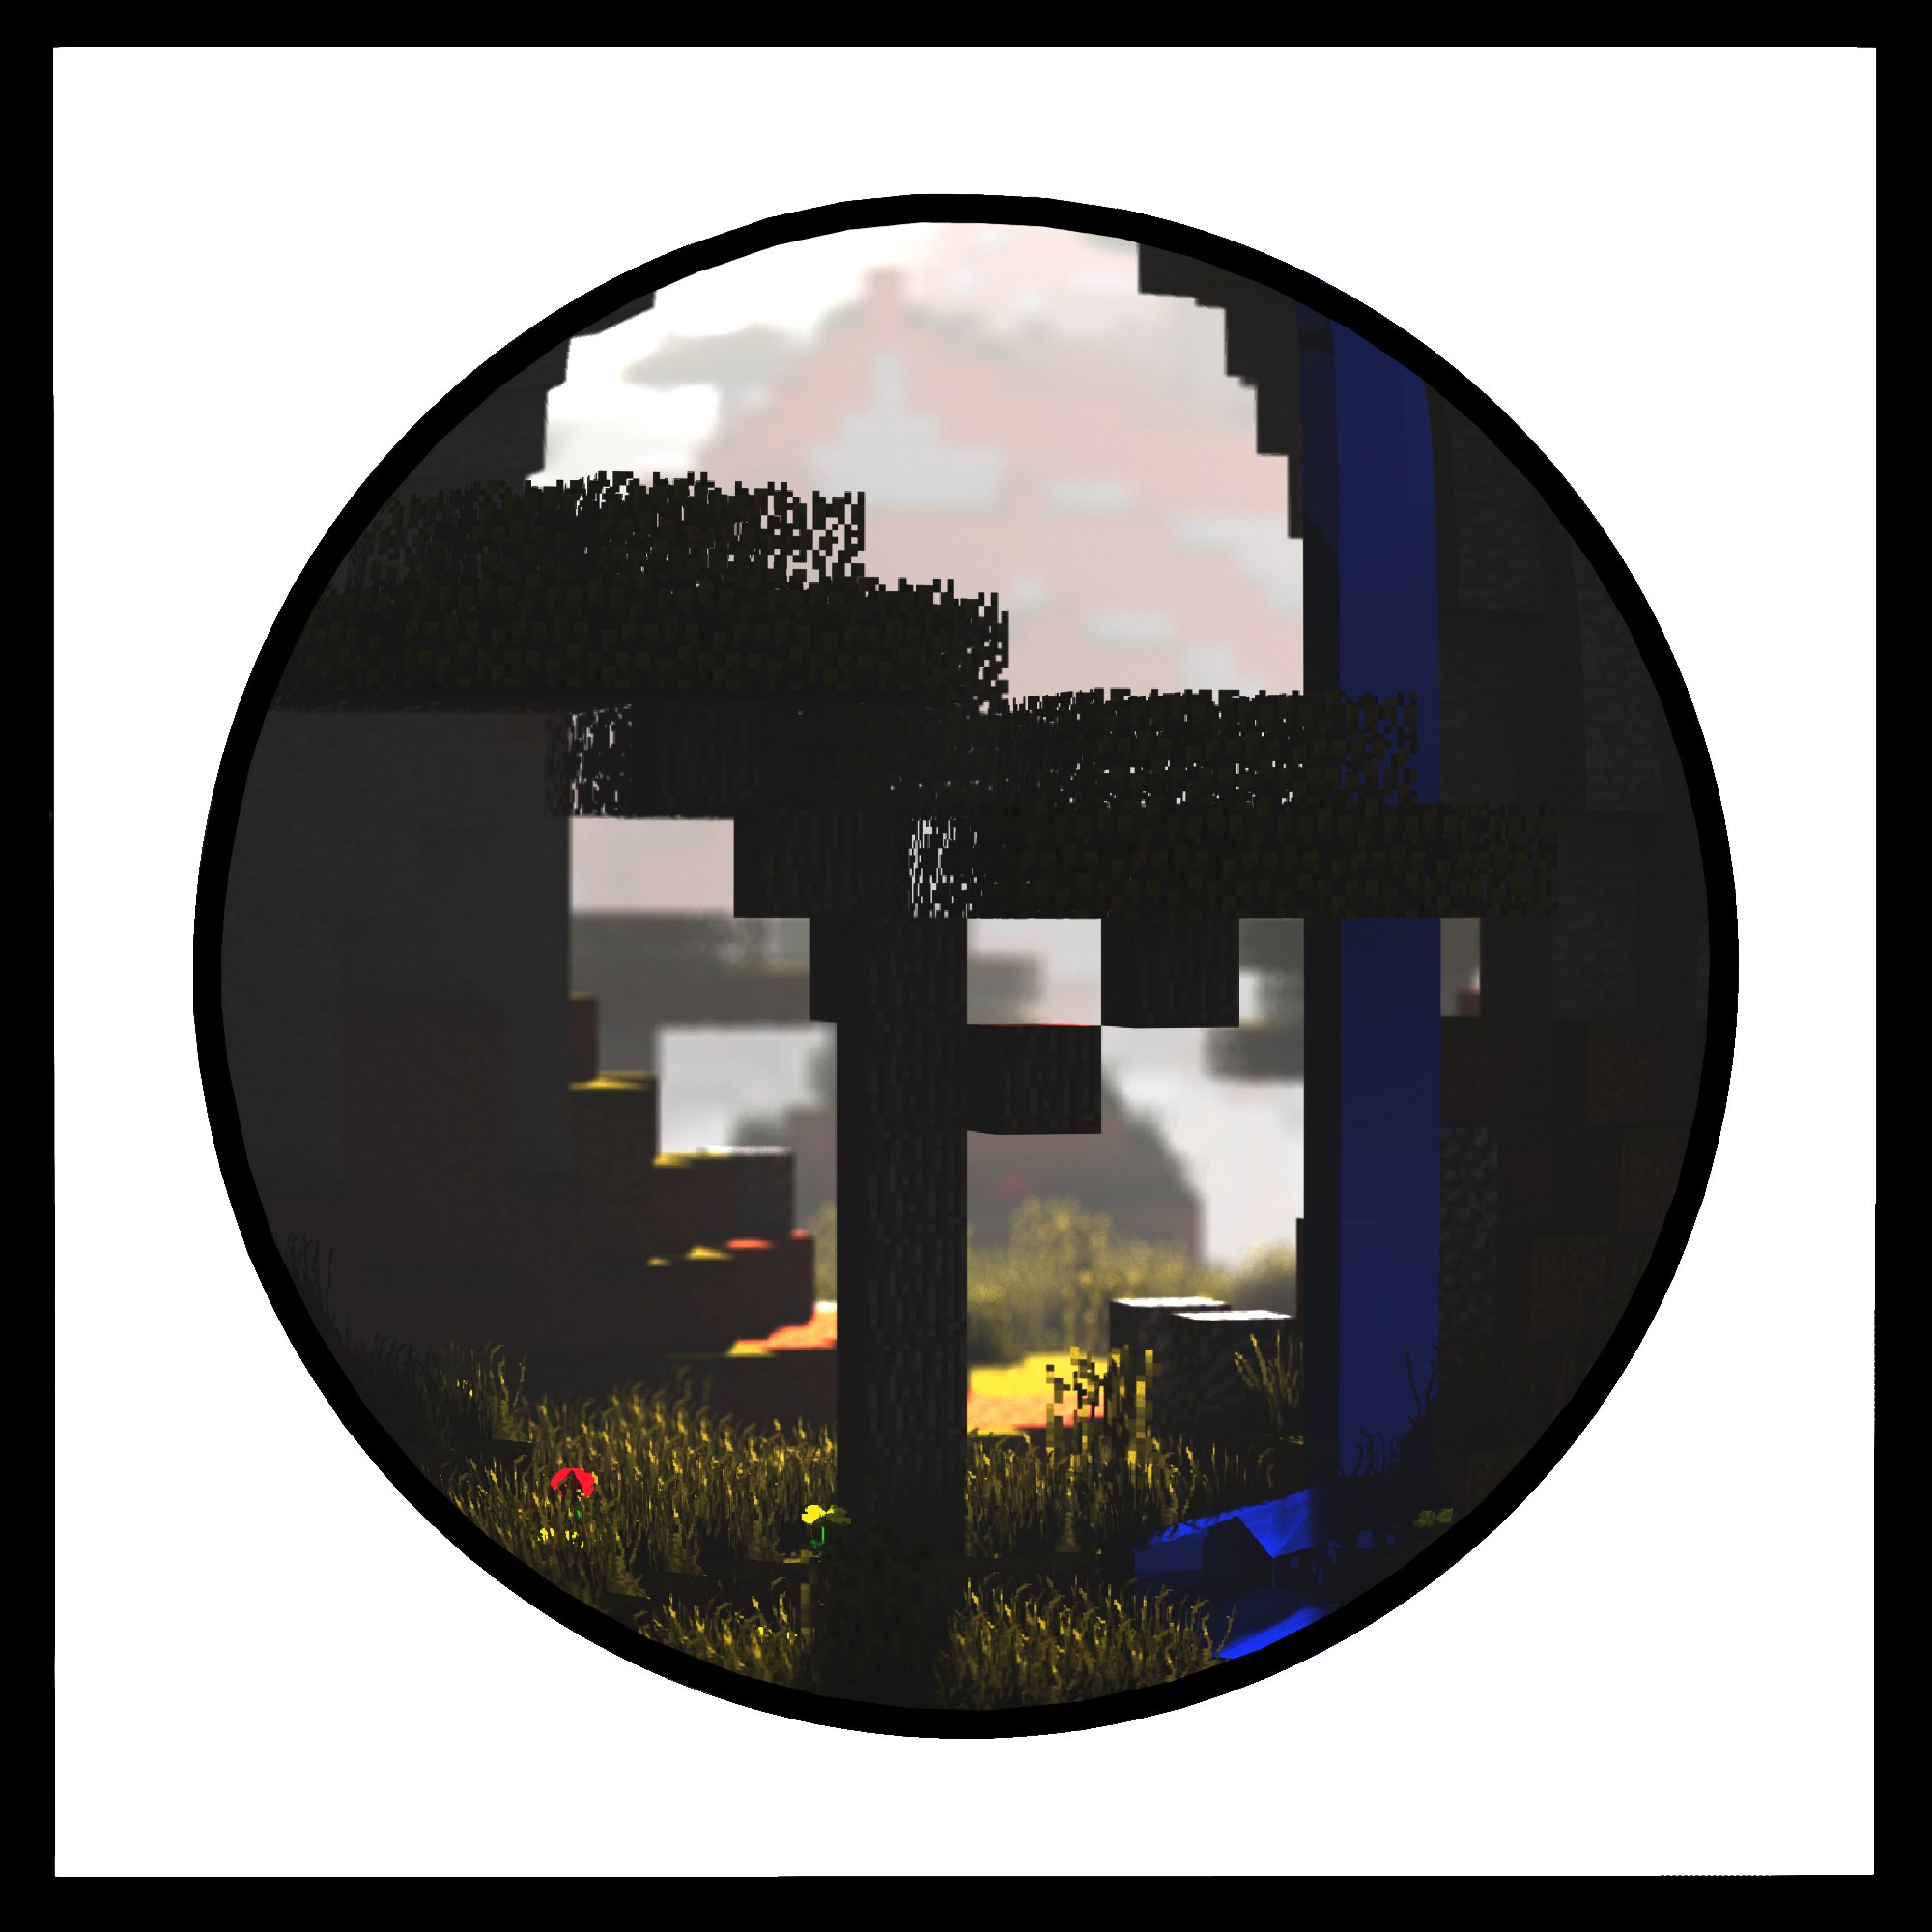 MinecraftPhotography's Profile Picture